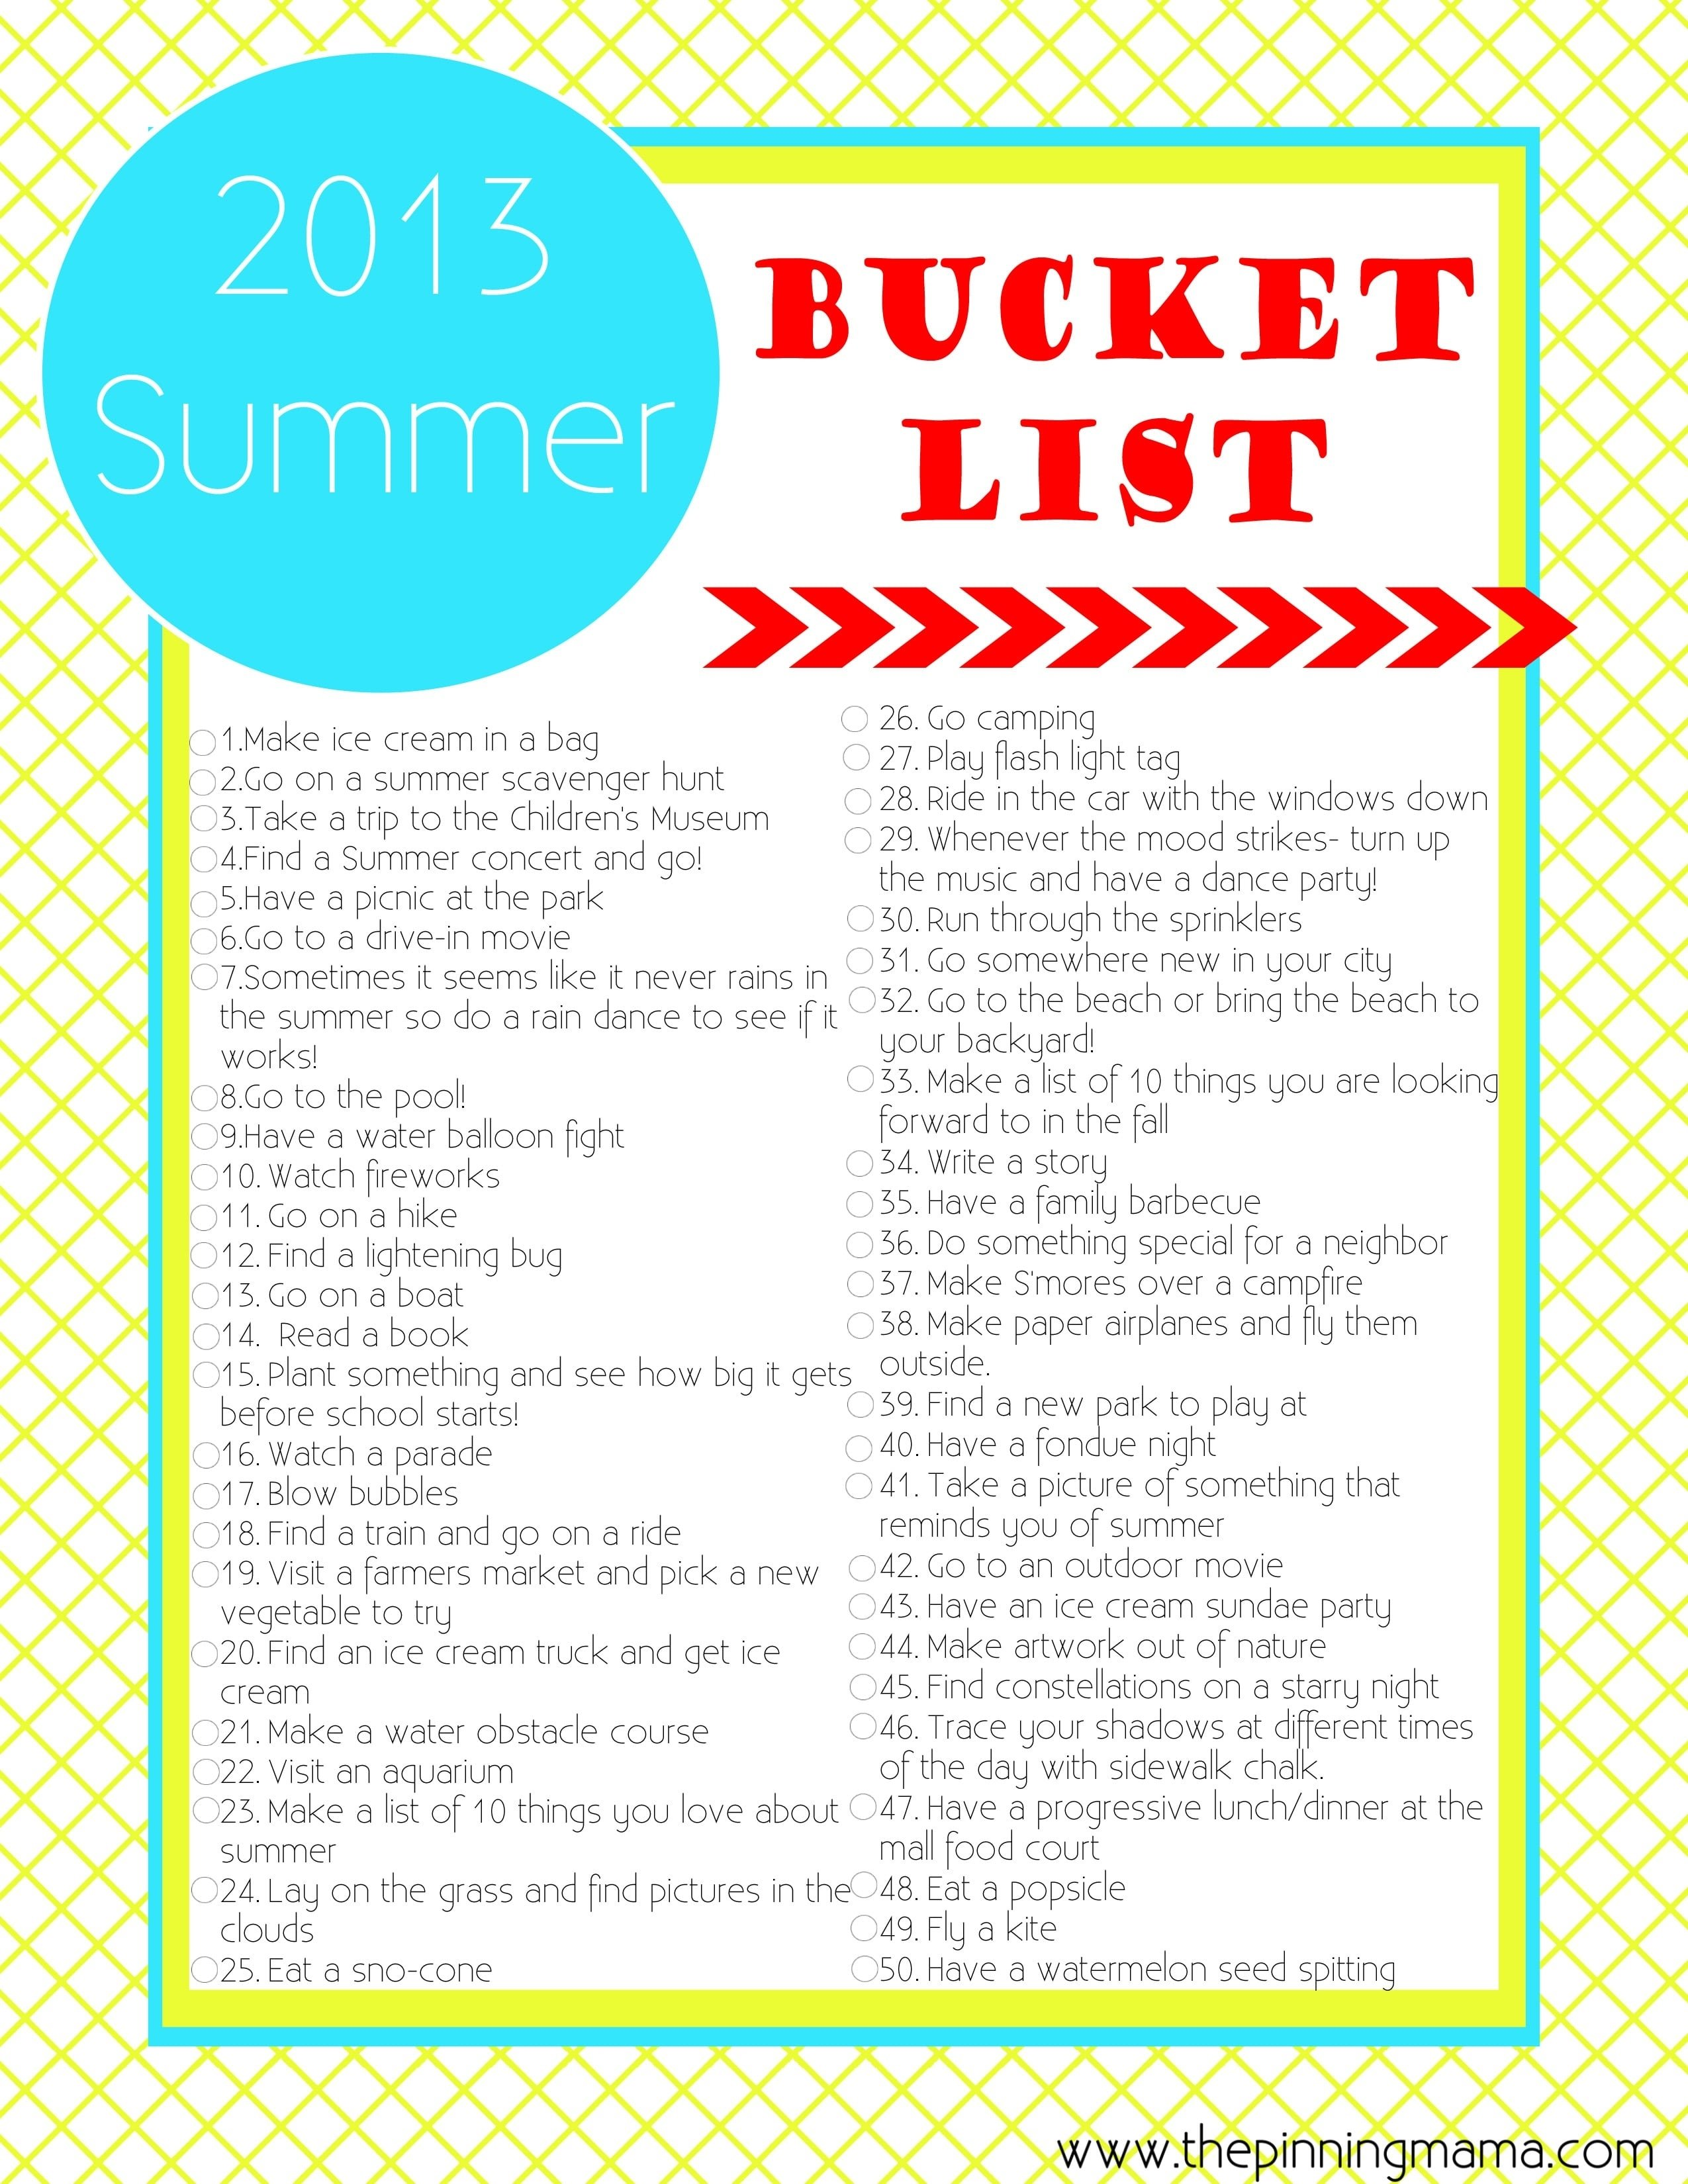 10 Amazing Summer Bucket List Ideas For Couples summer bucket list 50 summer ideas and activities for kids with 1